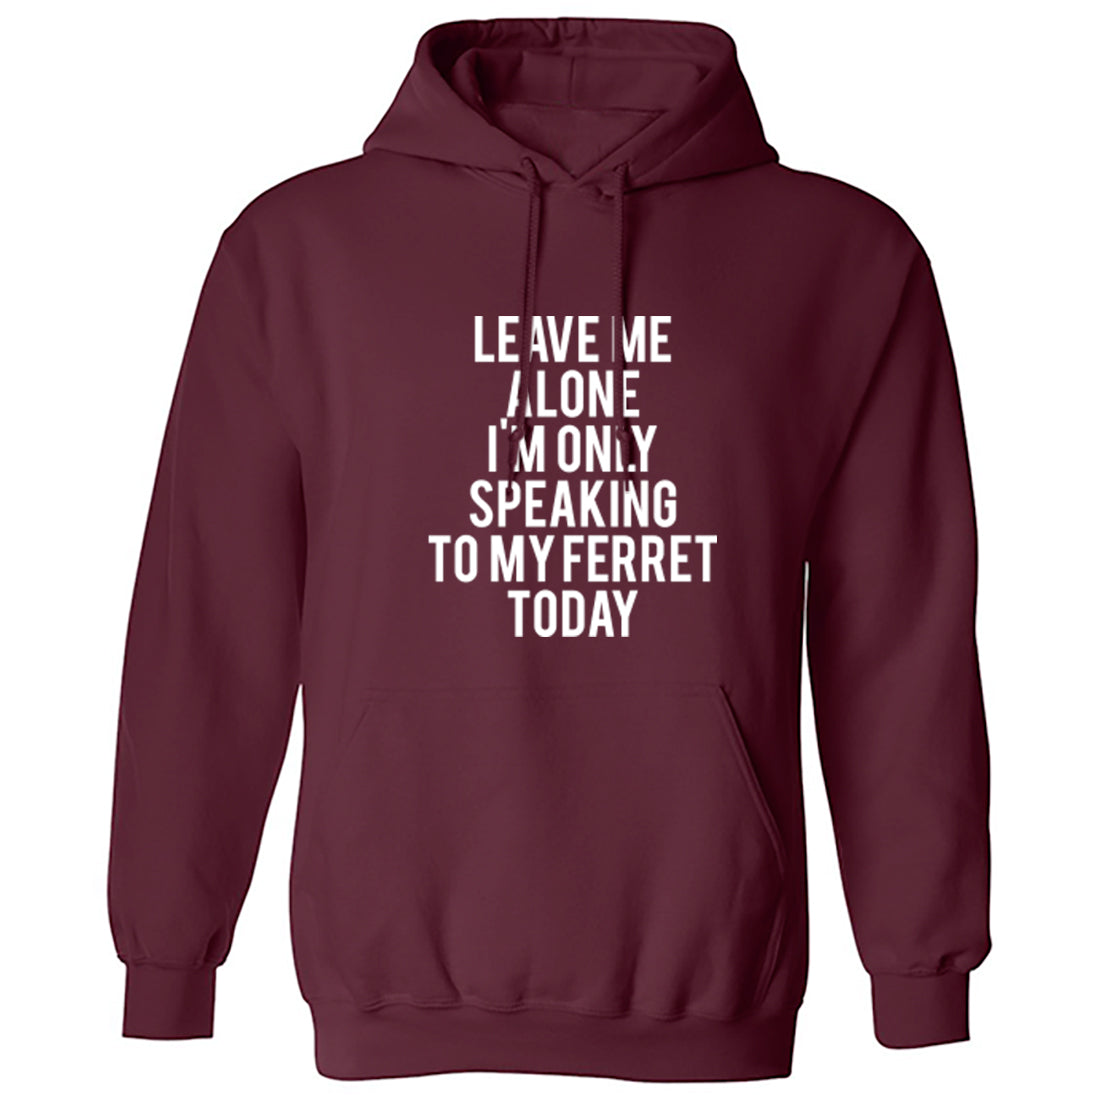 Leave Me Alone I'm Only Speaking To My Ferret Today Unisex Hoodie K0951 - Illustrated Identity Ltd.